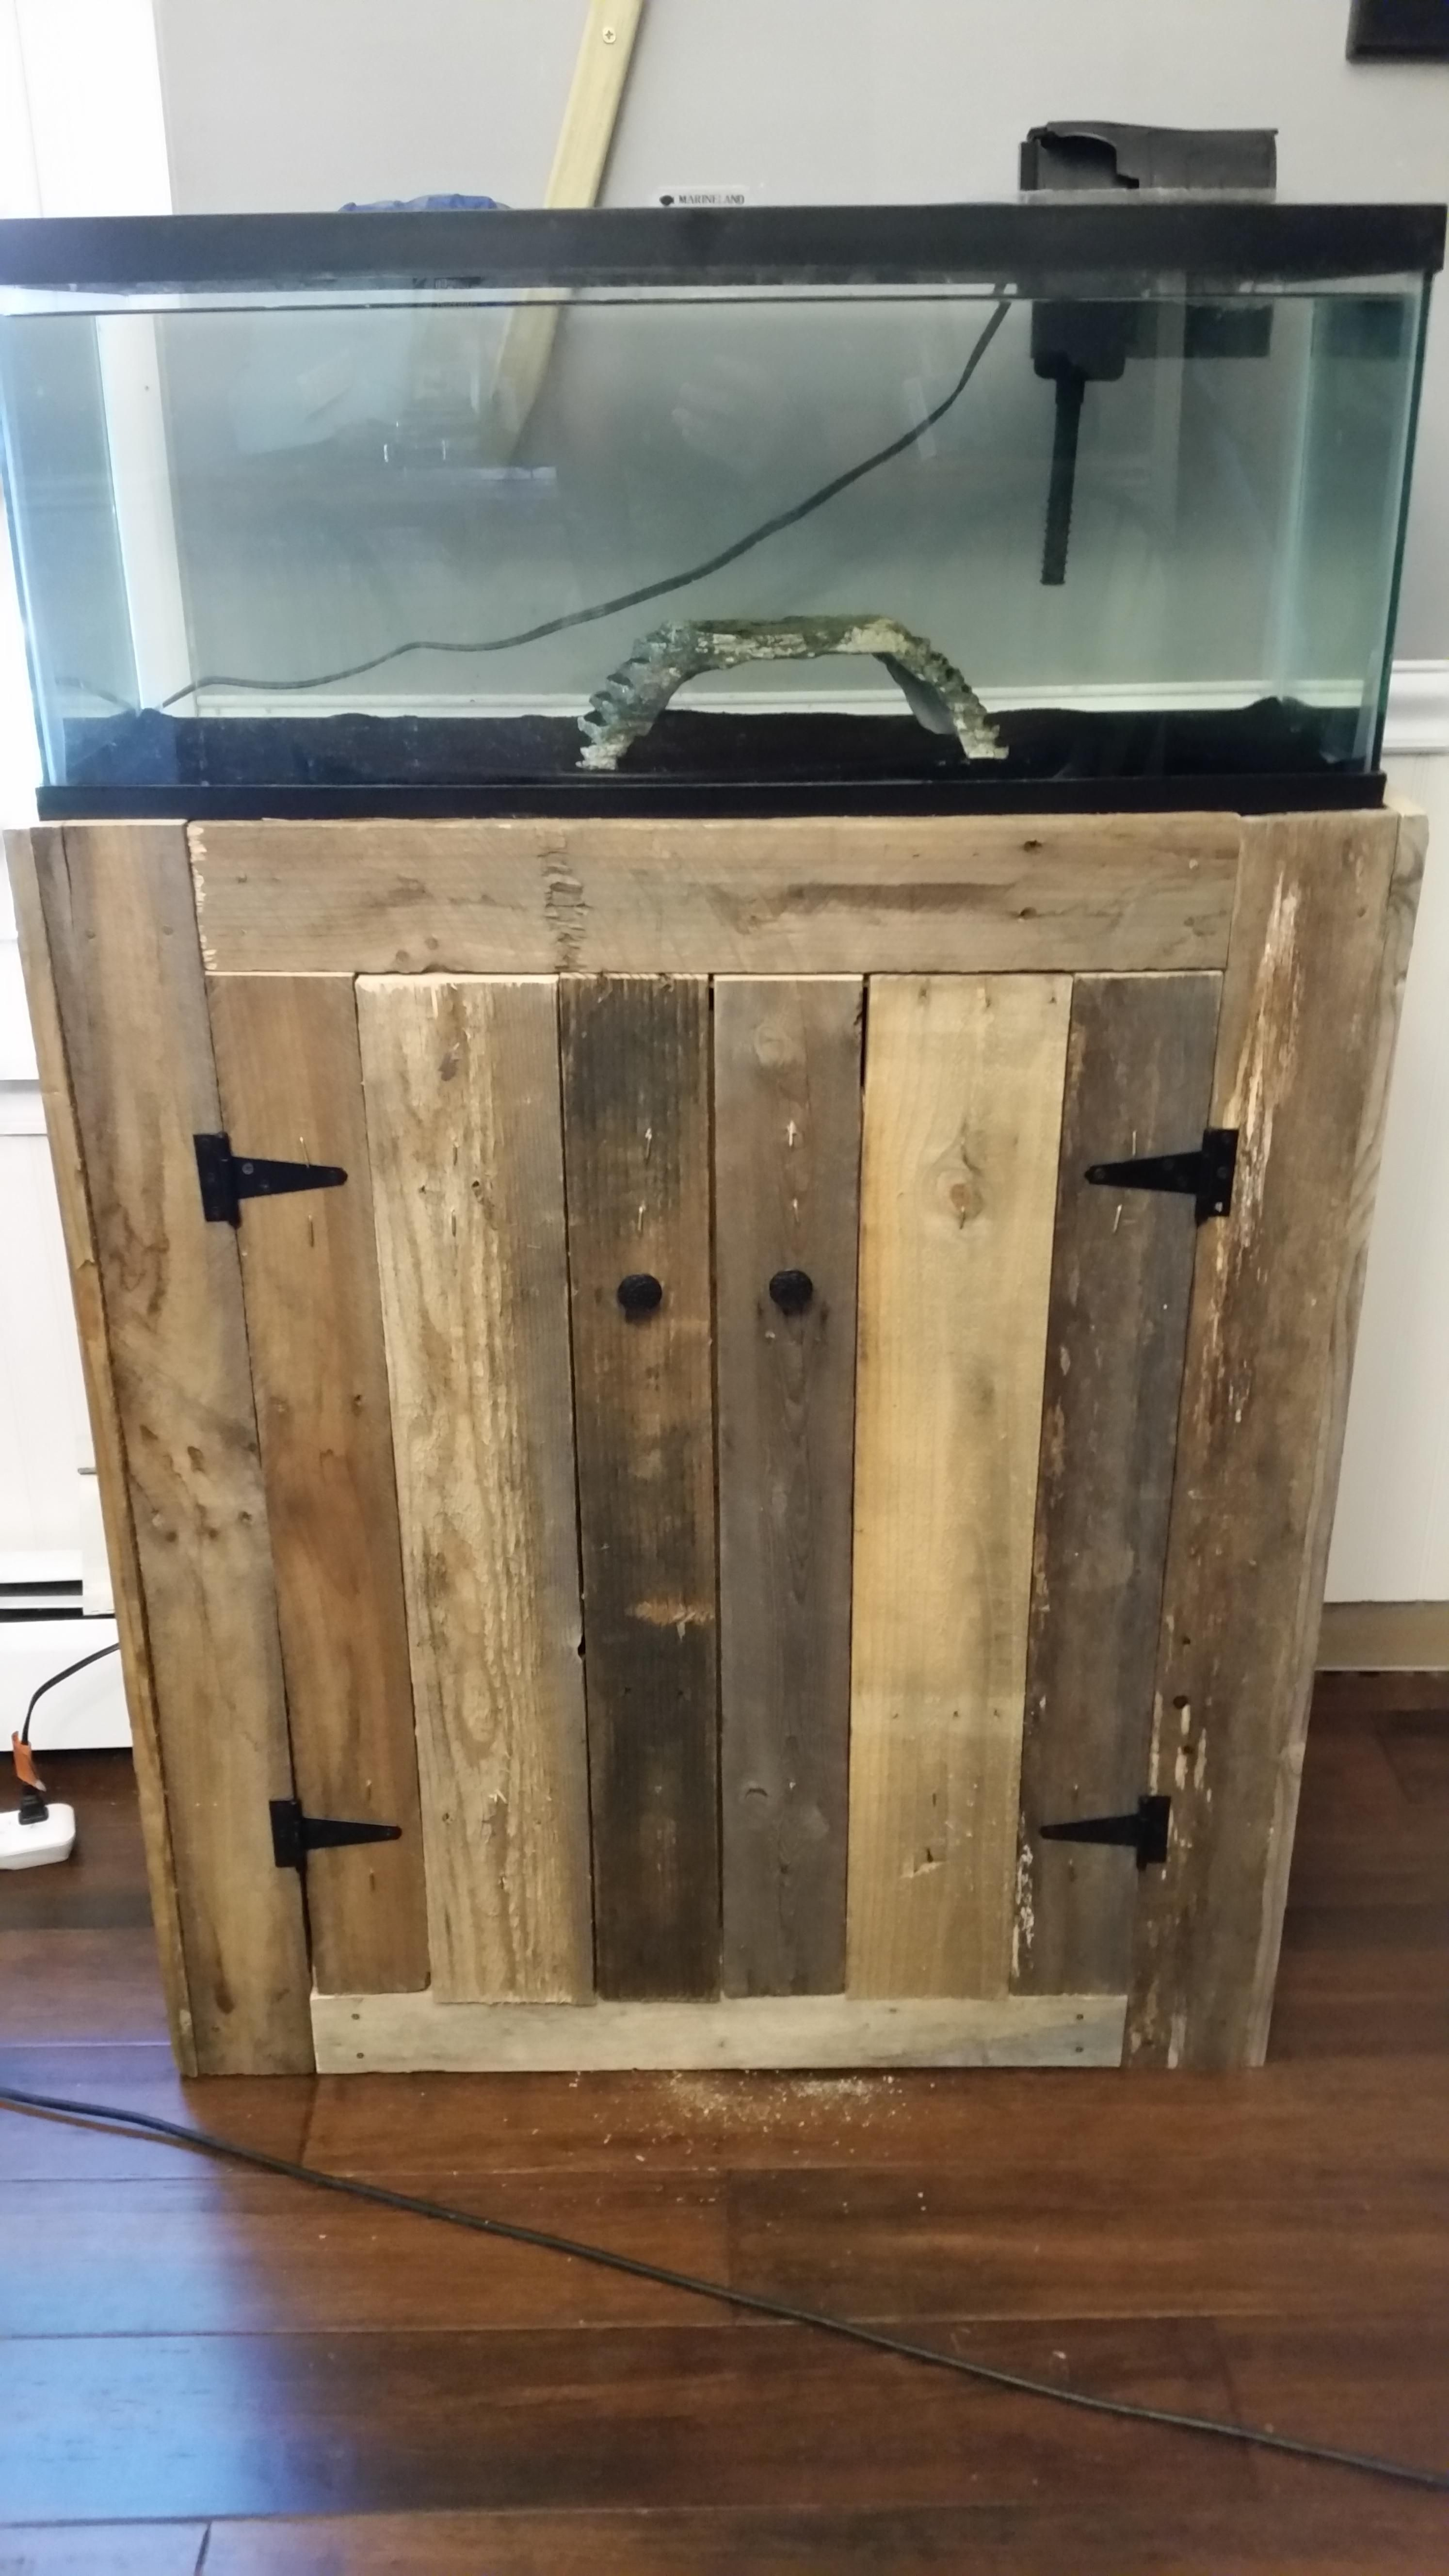 20 Gallon Fish Tank Stand Made Of Pallets Fish Tank Stand Tank